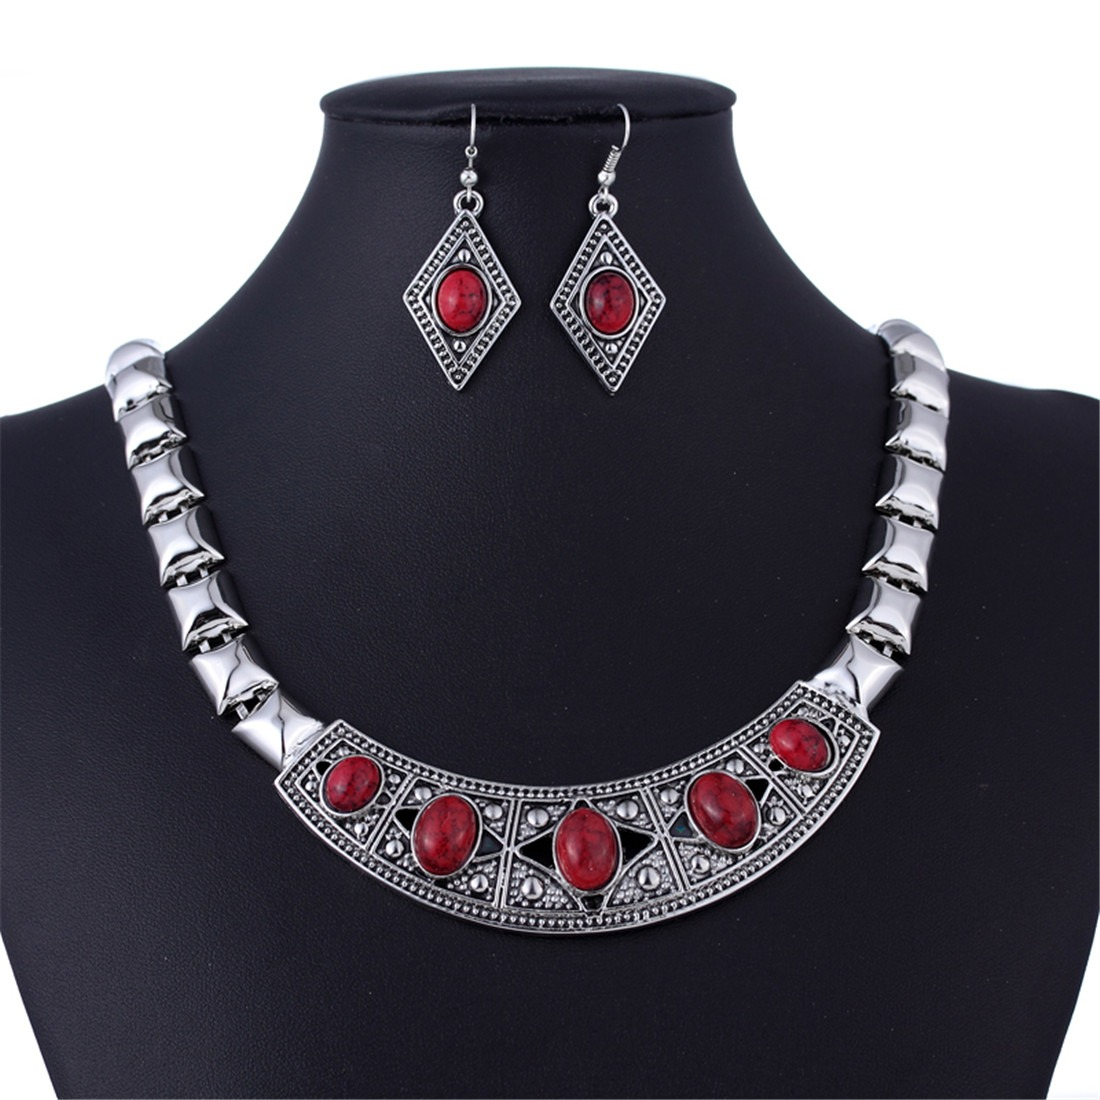 Chunky Choker Collar Silver Chain Earring Necklace Set ...